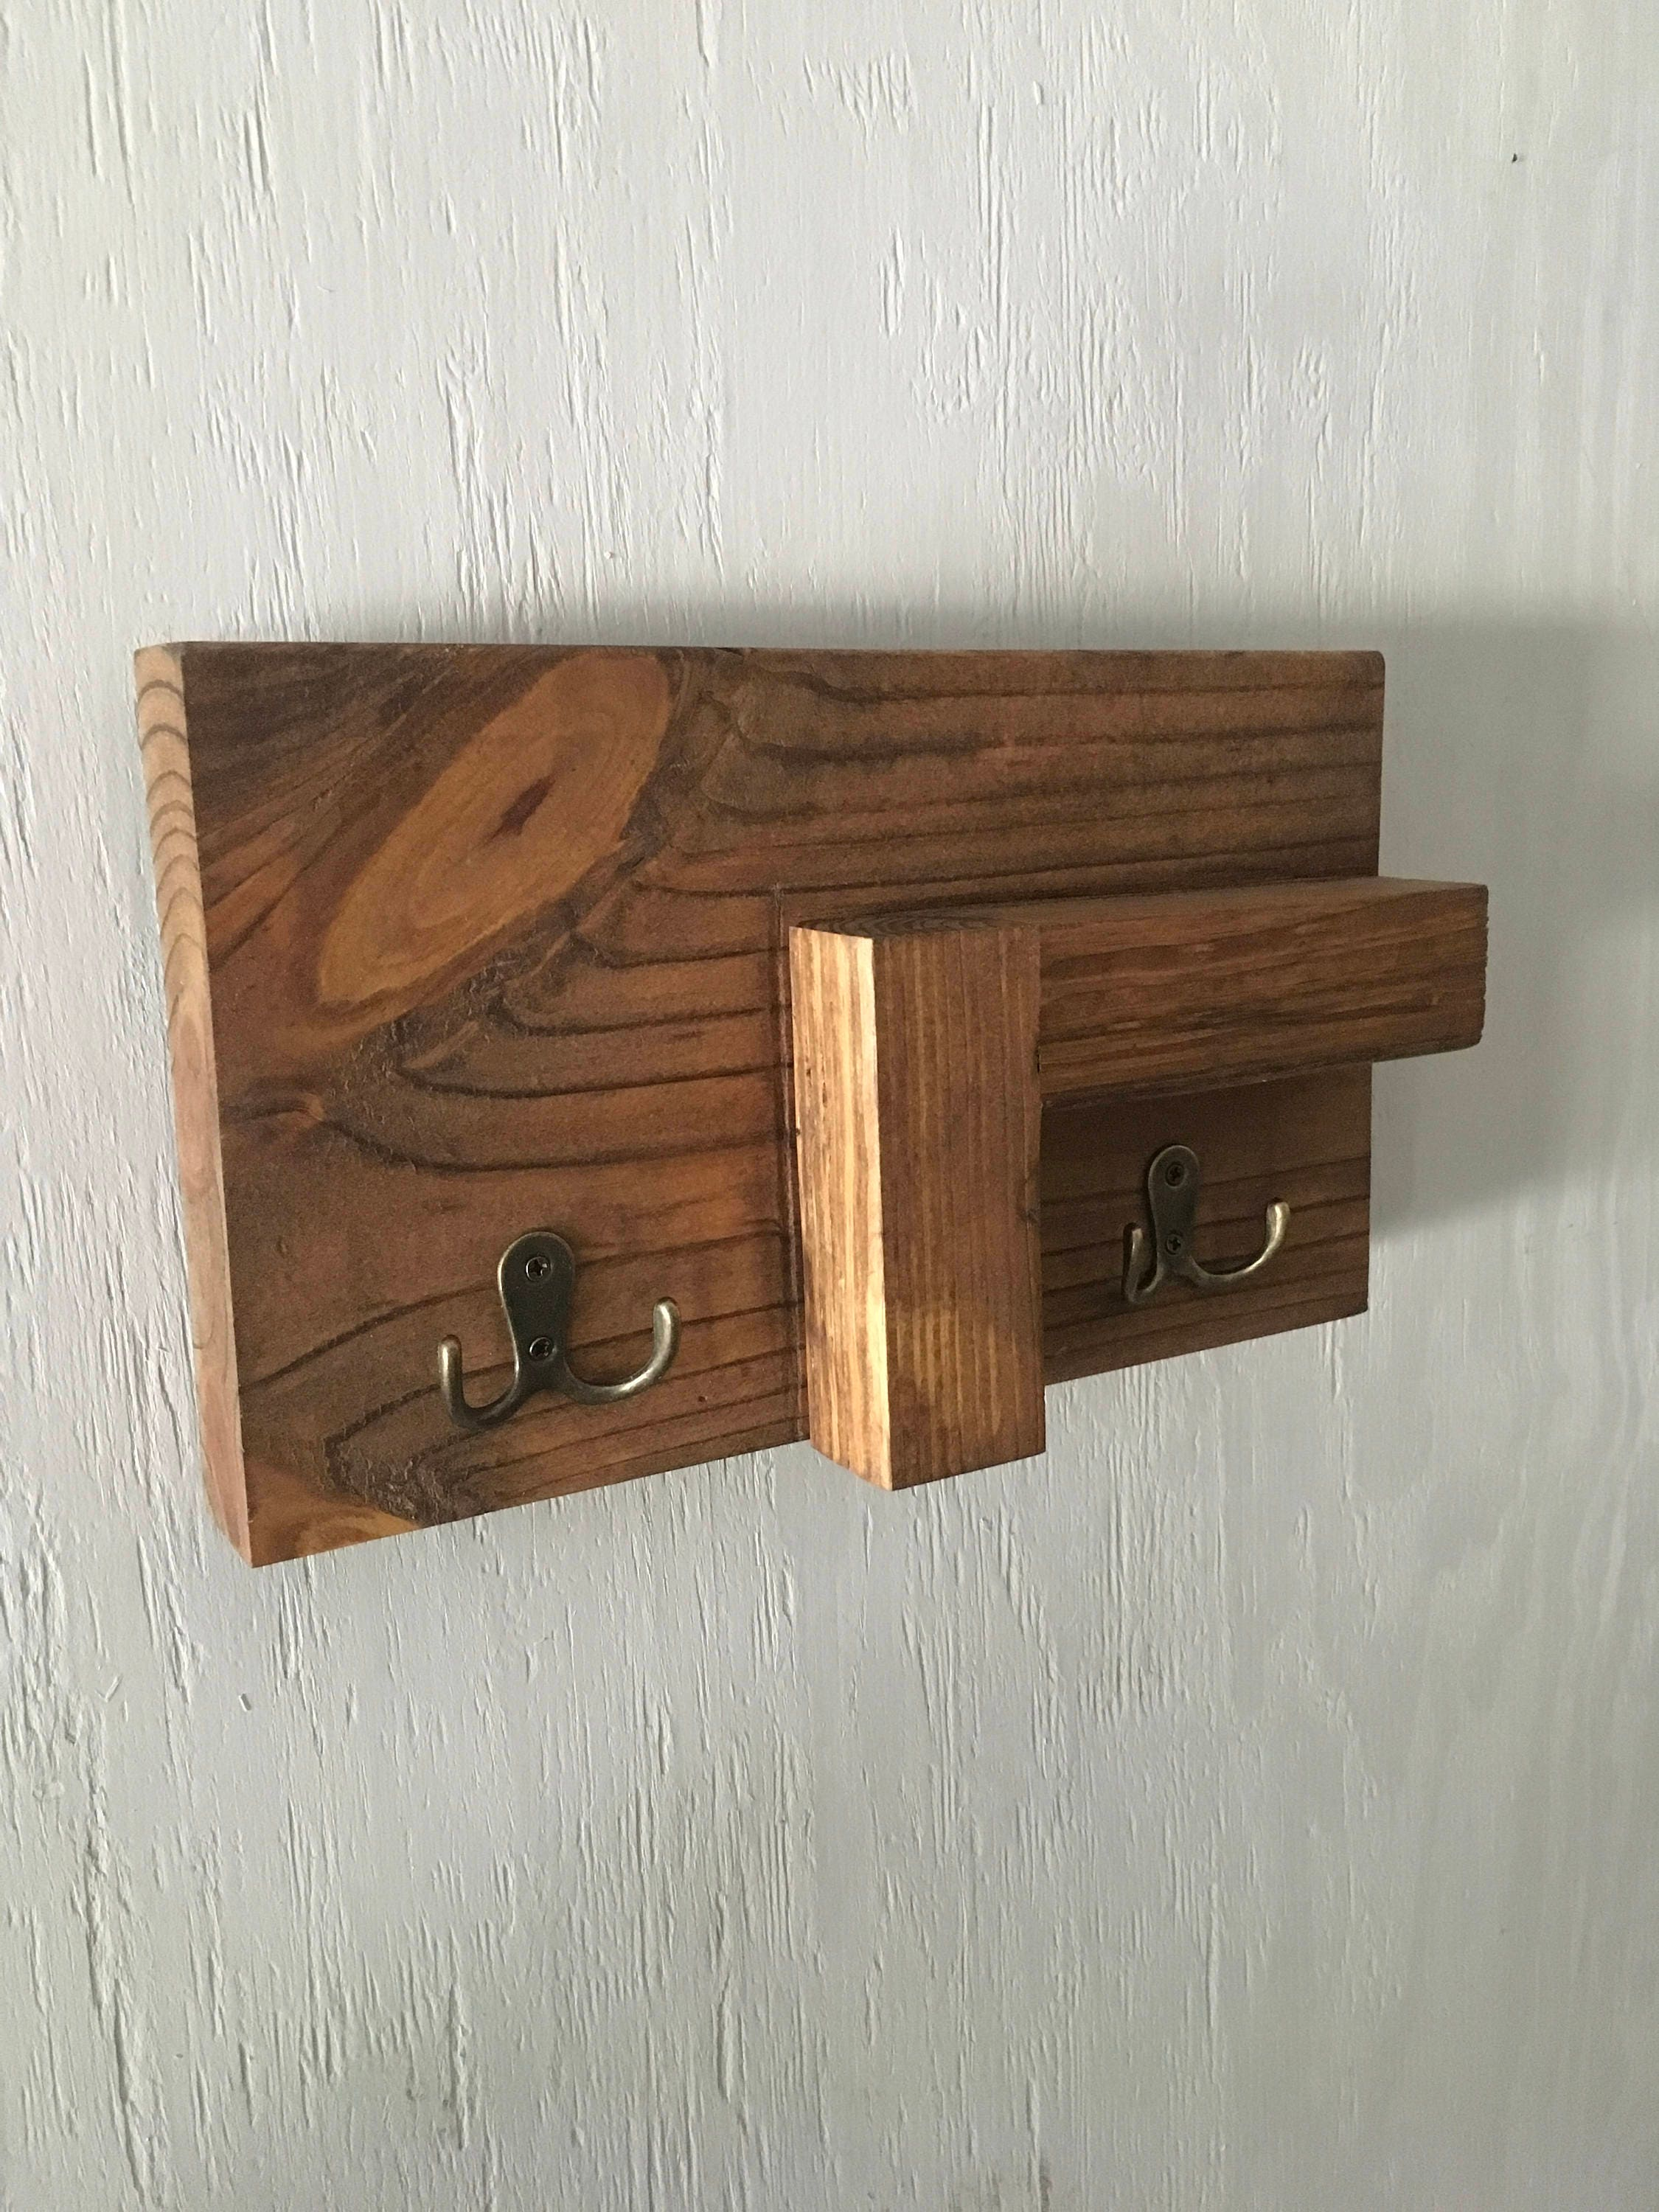 Wooden Key Holder With Shelf Cyber Monday Sale Key Shelf Wall Decor Leash Holder